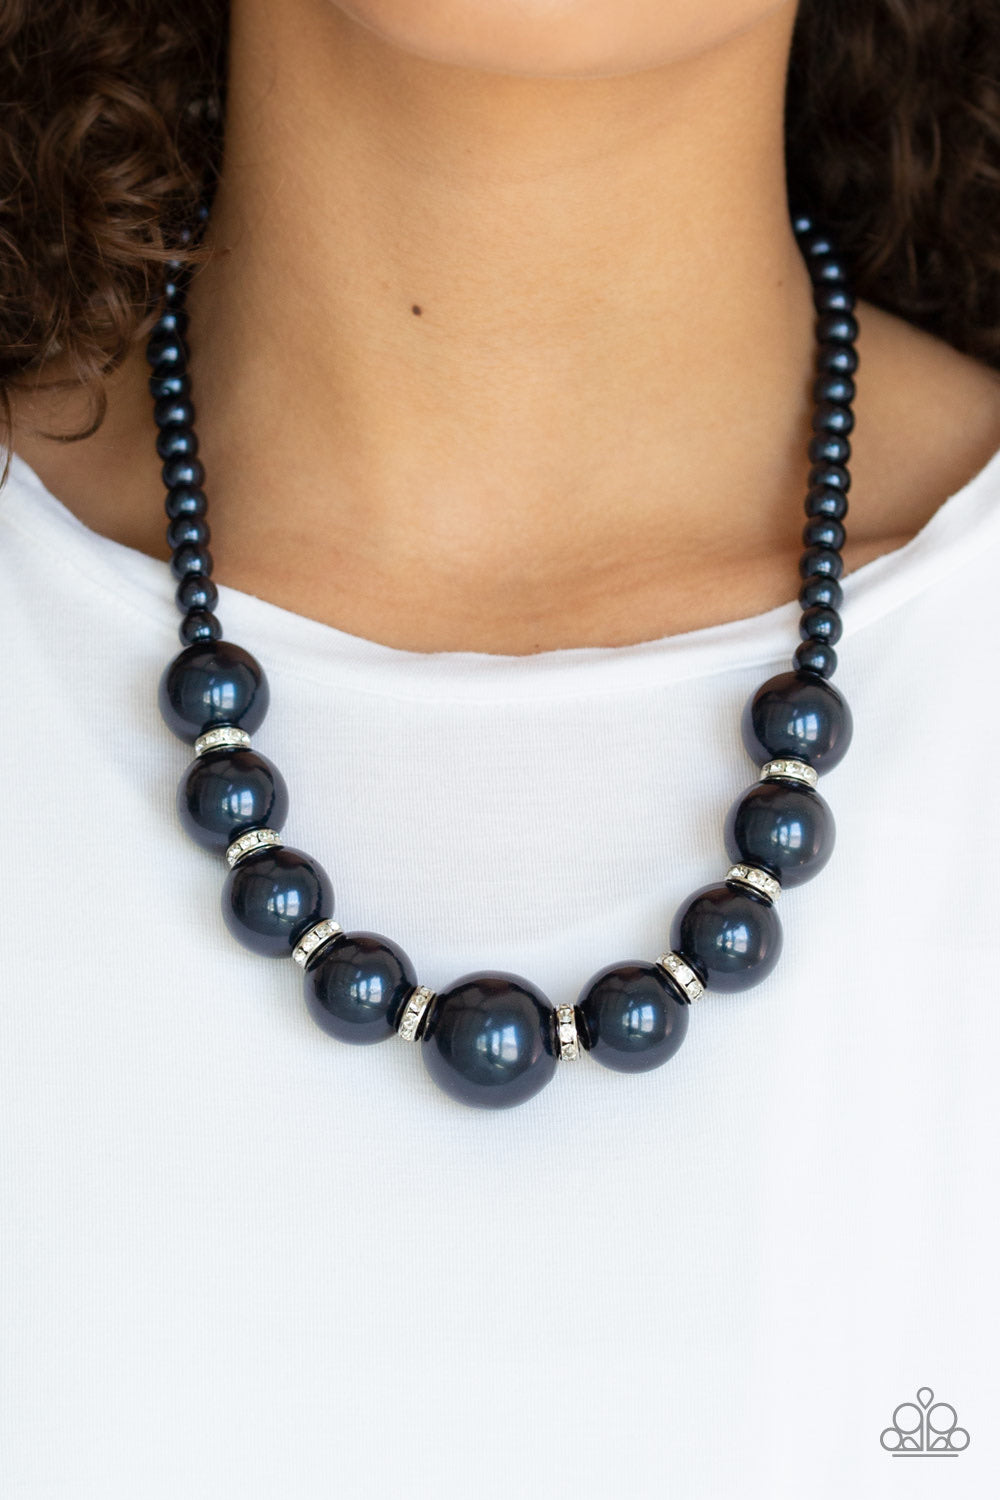 SoHo Socialite Blue Paparazzi Necklace - JewelTonez Jewelry